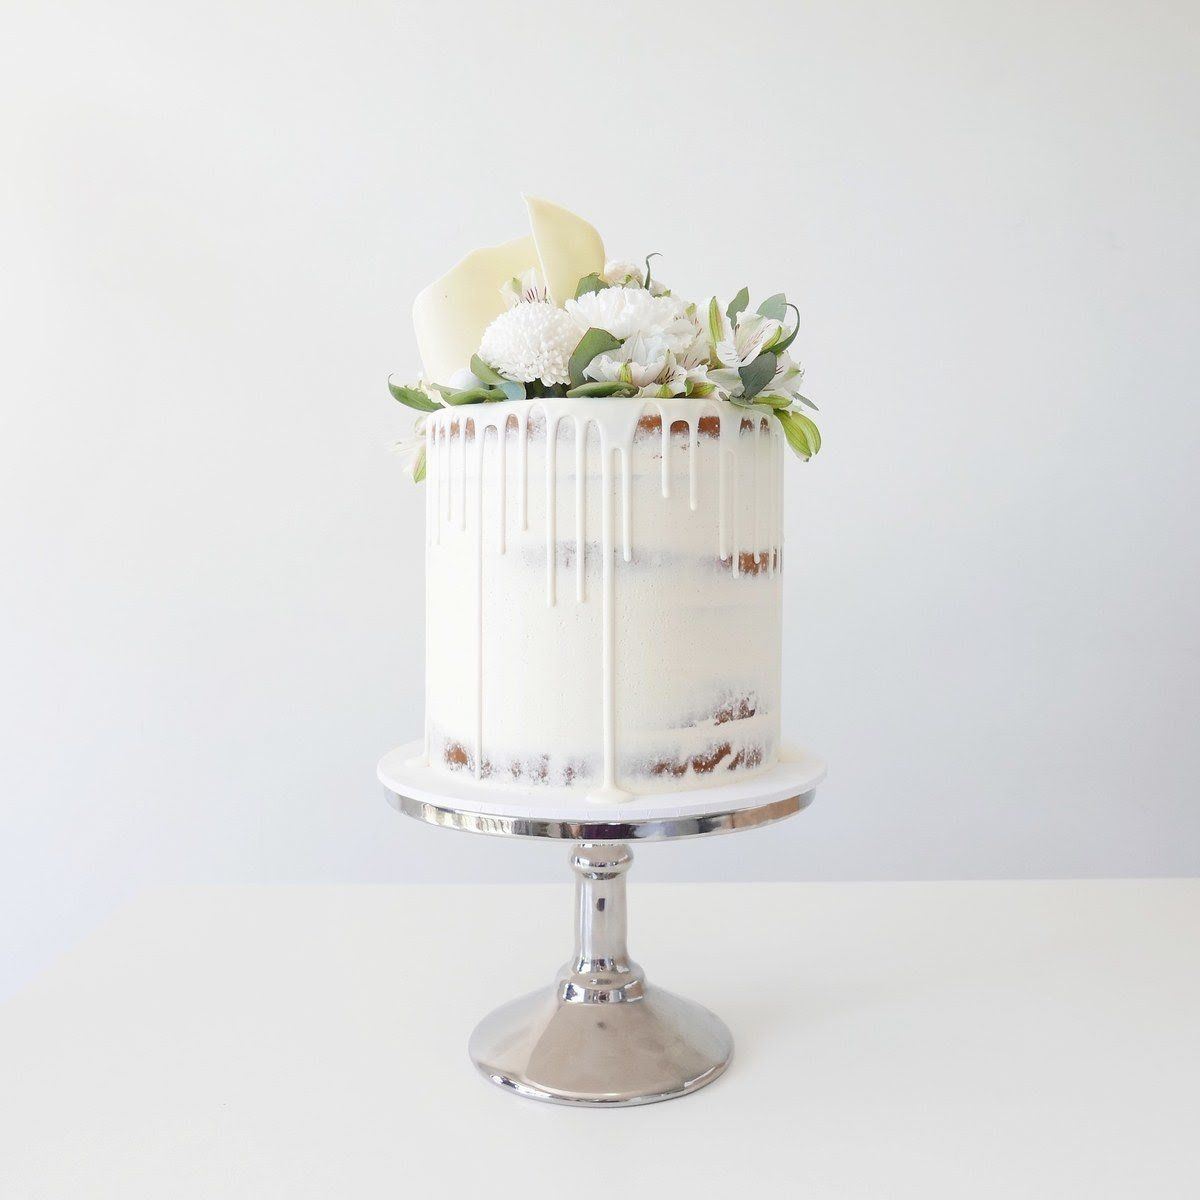 Lemon Elderflower Cake Copycat Royal Wedding Cake: These One-Tier Wedding Cakes Are Legit Works Of Art (With